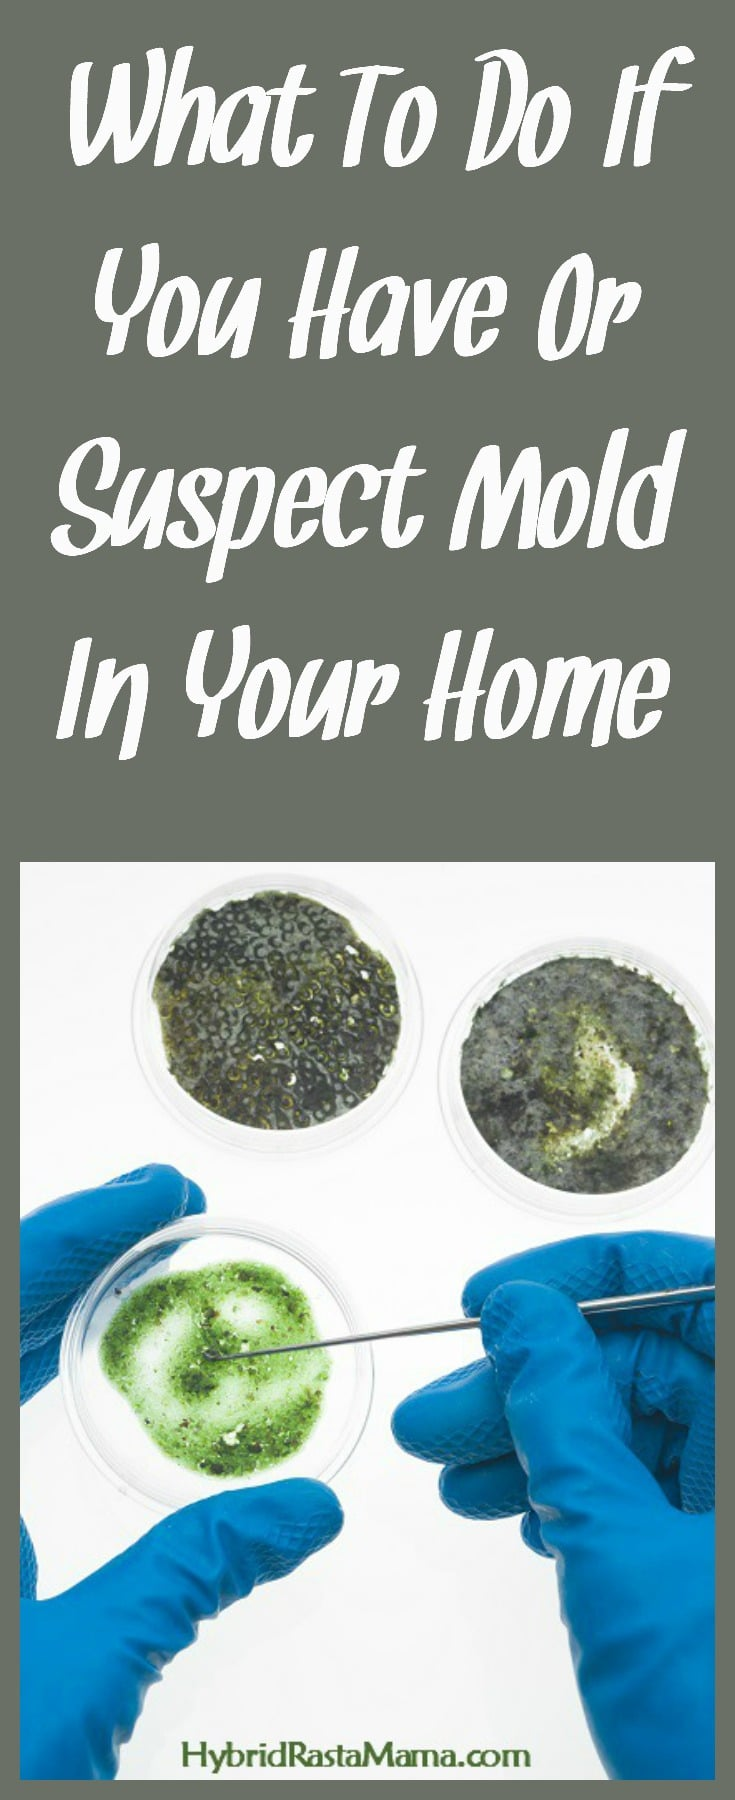 Suspect toxic mold in your home or workplace? Know for sure that you have a mold problem? Unsure where to start? This post outlines what tests to consider and what protocols to begin with. From HybridRastaMama.com.